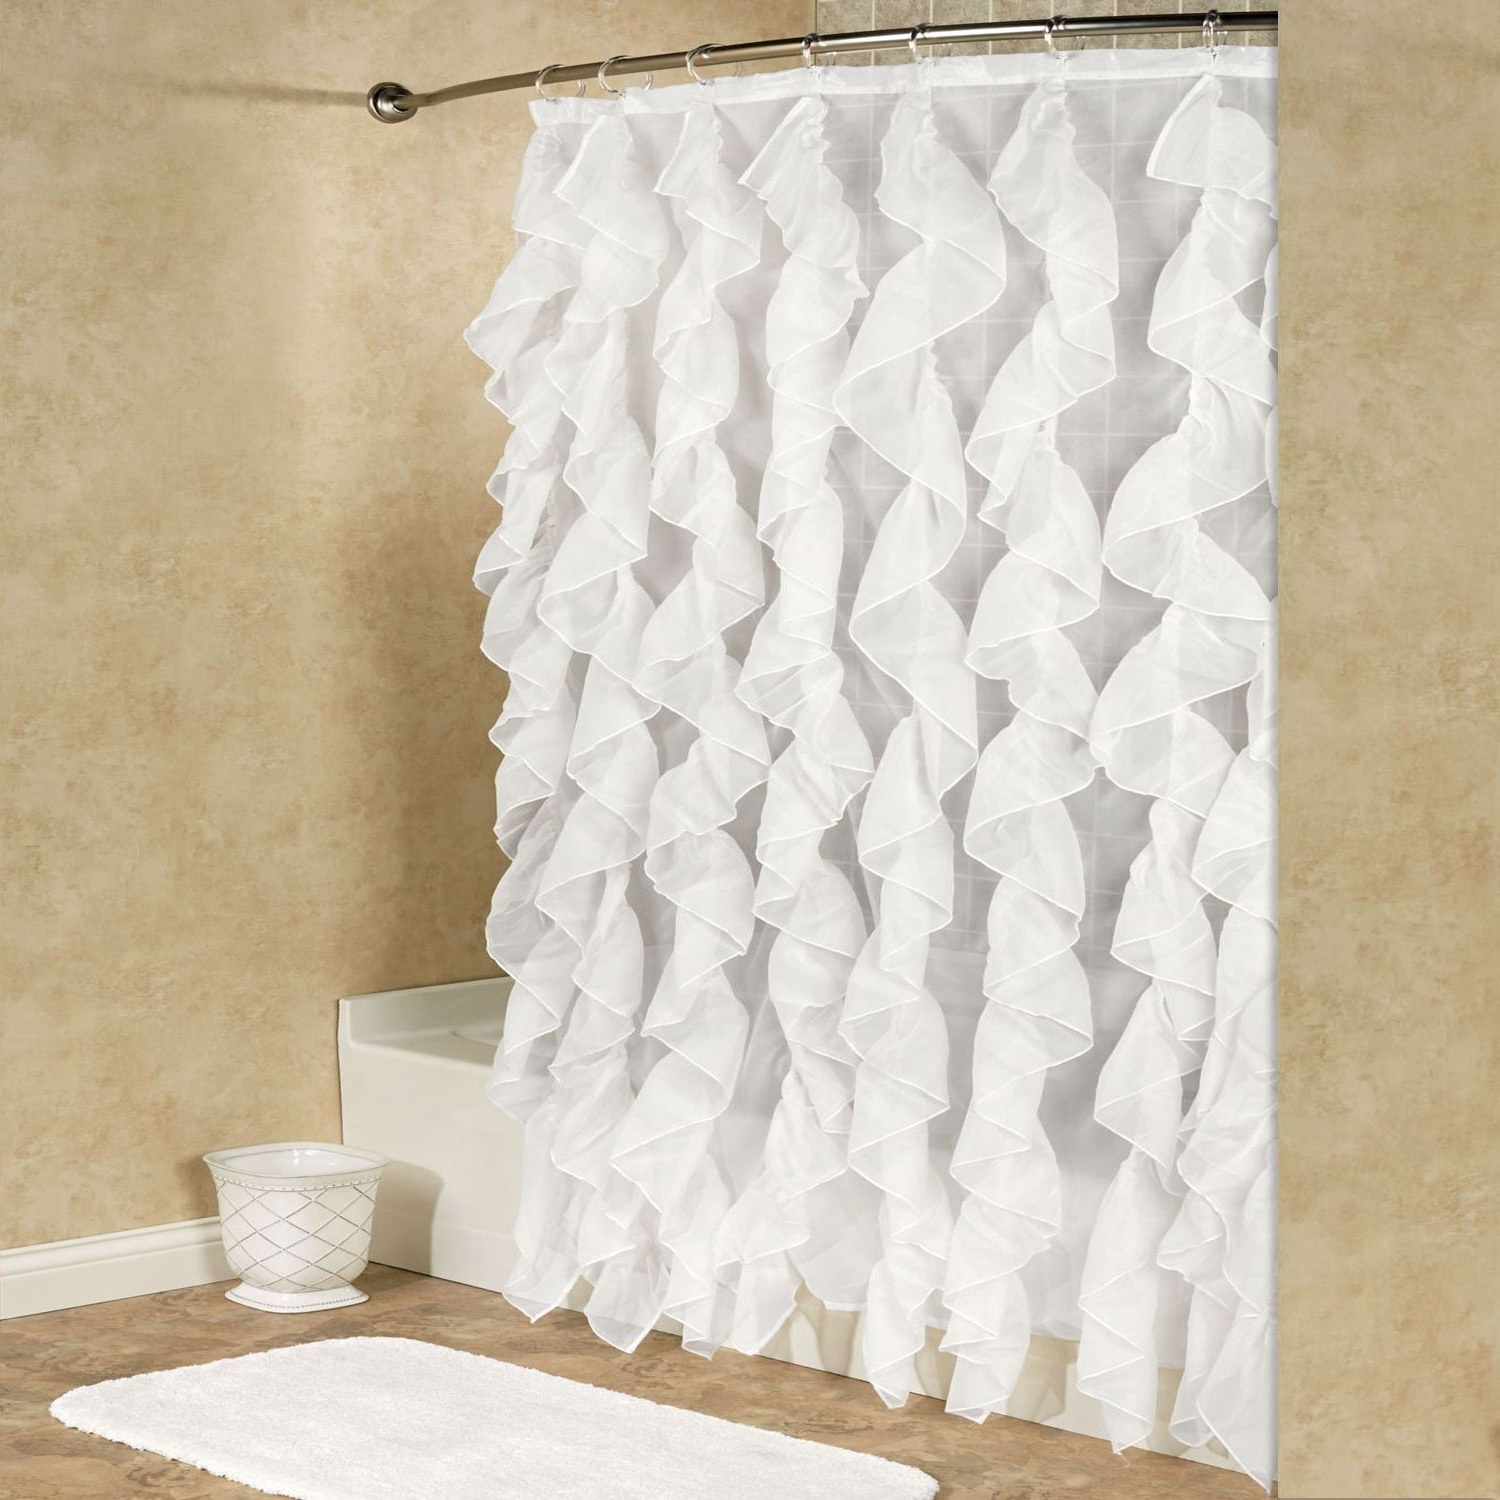 Current Chic Sheer Voile Vertical Waterfall Ruffled Shower Curtain For Silver Vertical Ruffled Waterfall Valance And Curtain Tiers (View 16 of 20)